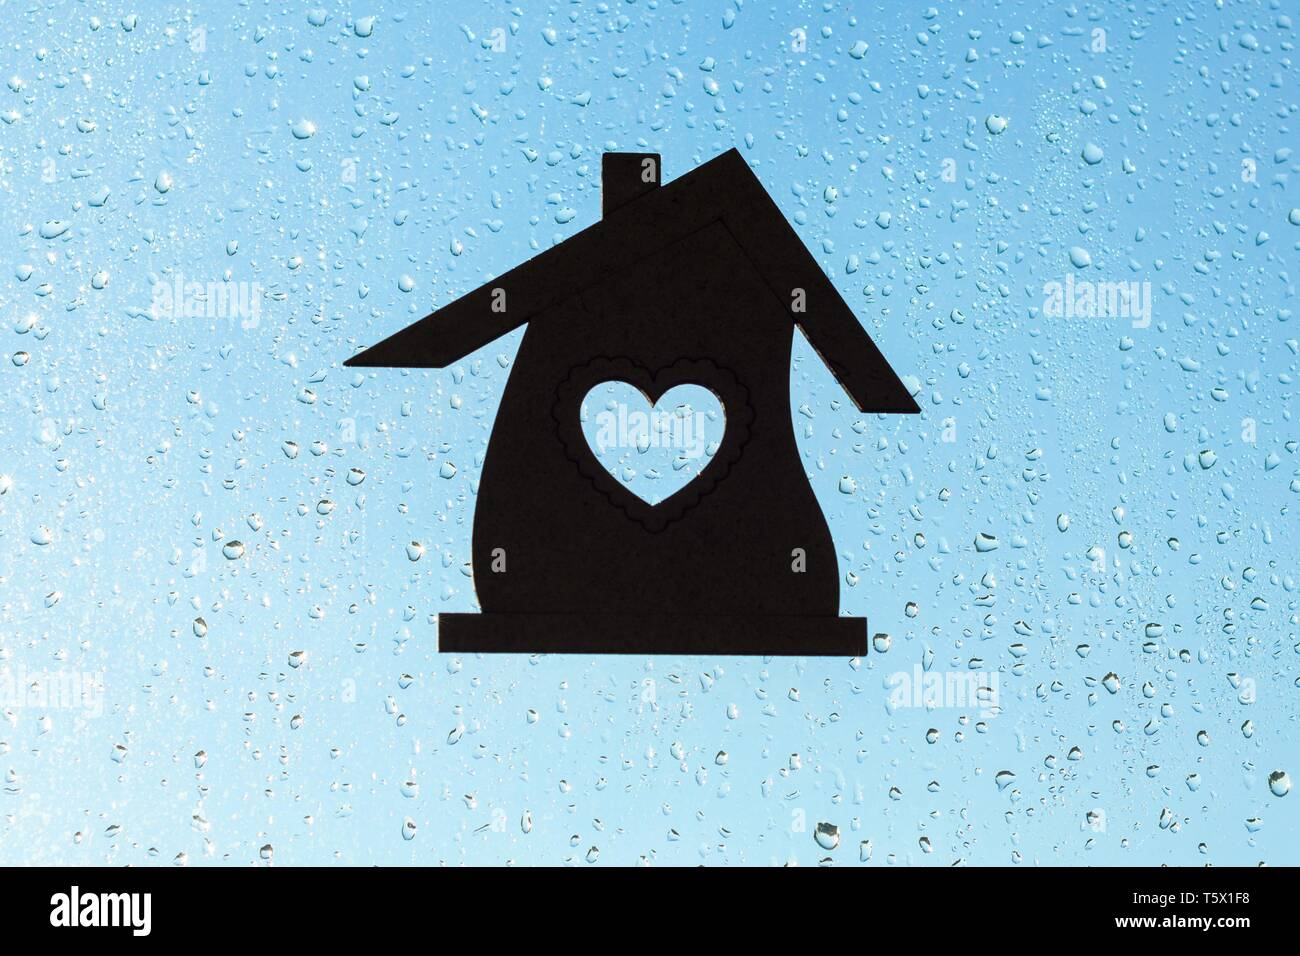 Home Sweet Home. Home symbol with a heart shape on a window background with sunny drops of rain. - Stock Image